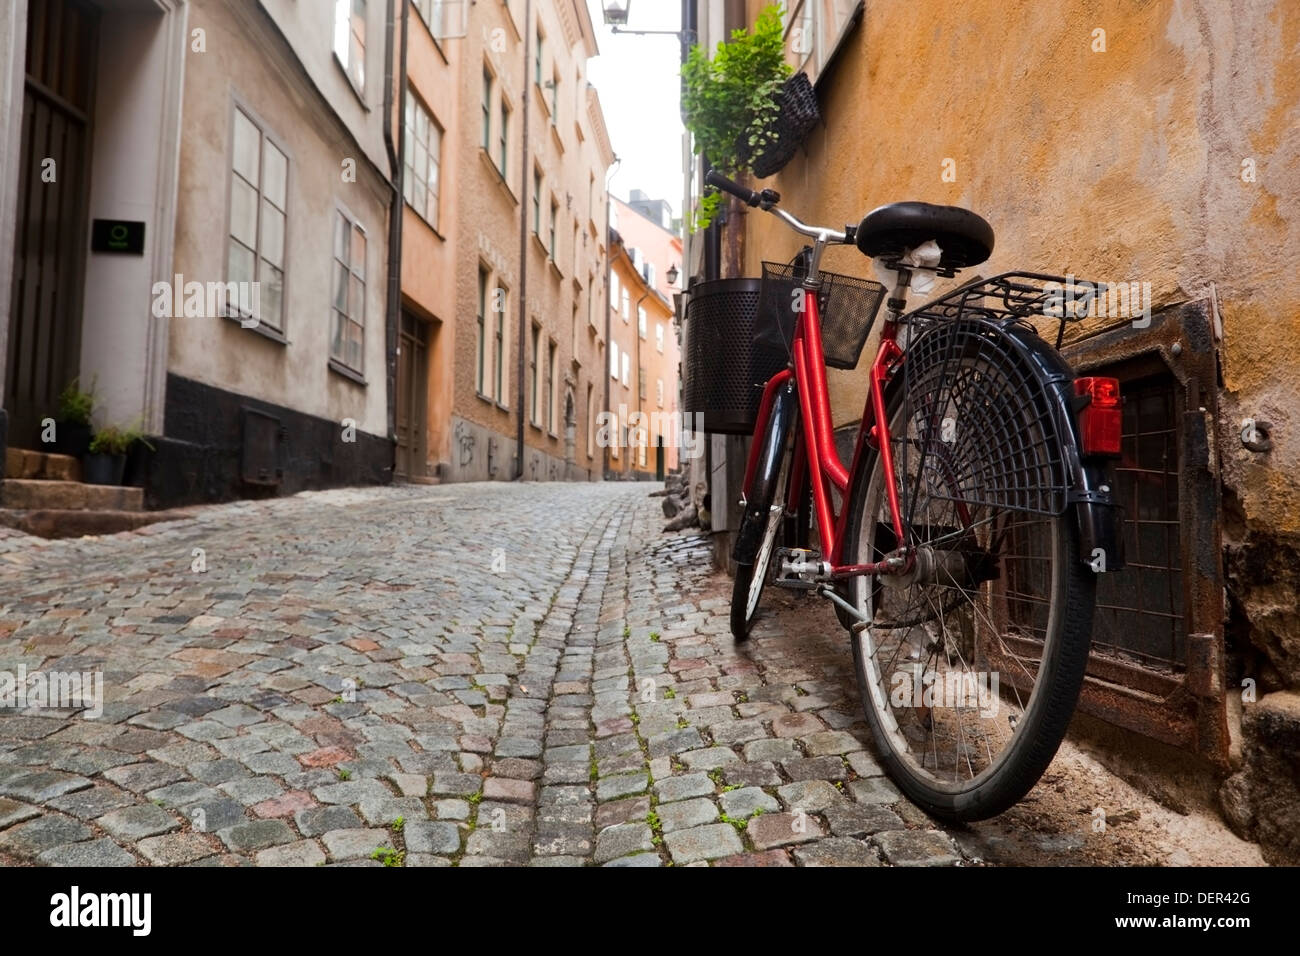 A bike in the Gamla Stan old town of Stockholm, Sweden, Europe - Stock Image